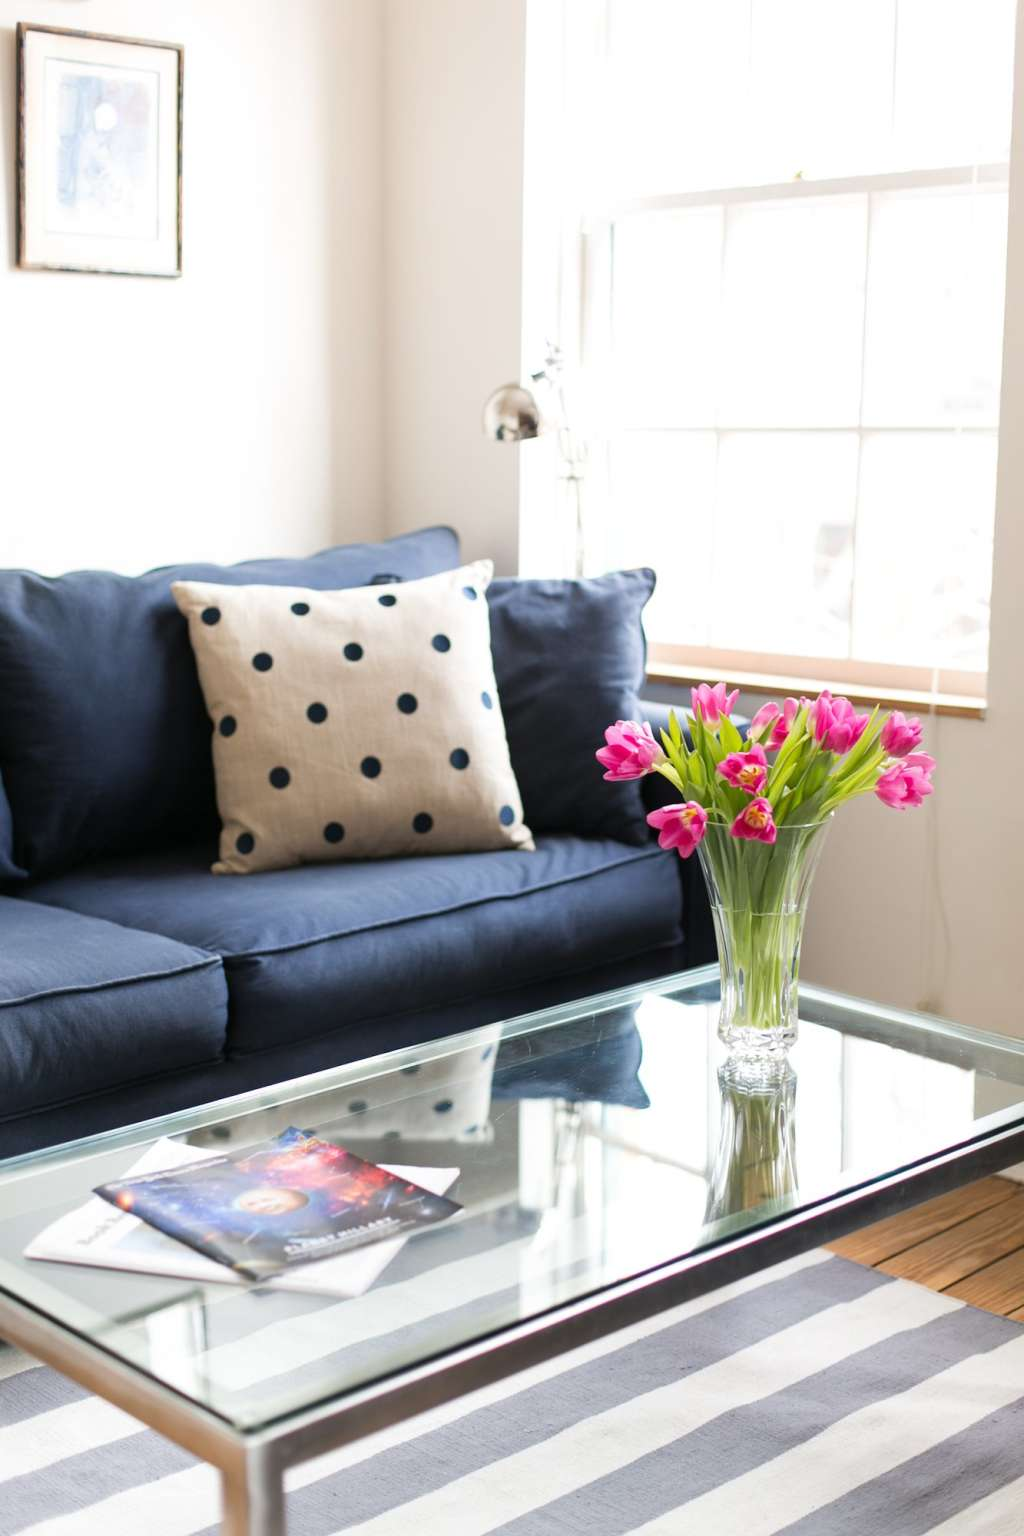 Cheaply Chic: The Best Ways To Live Frugally, Without Compromising